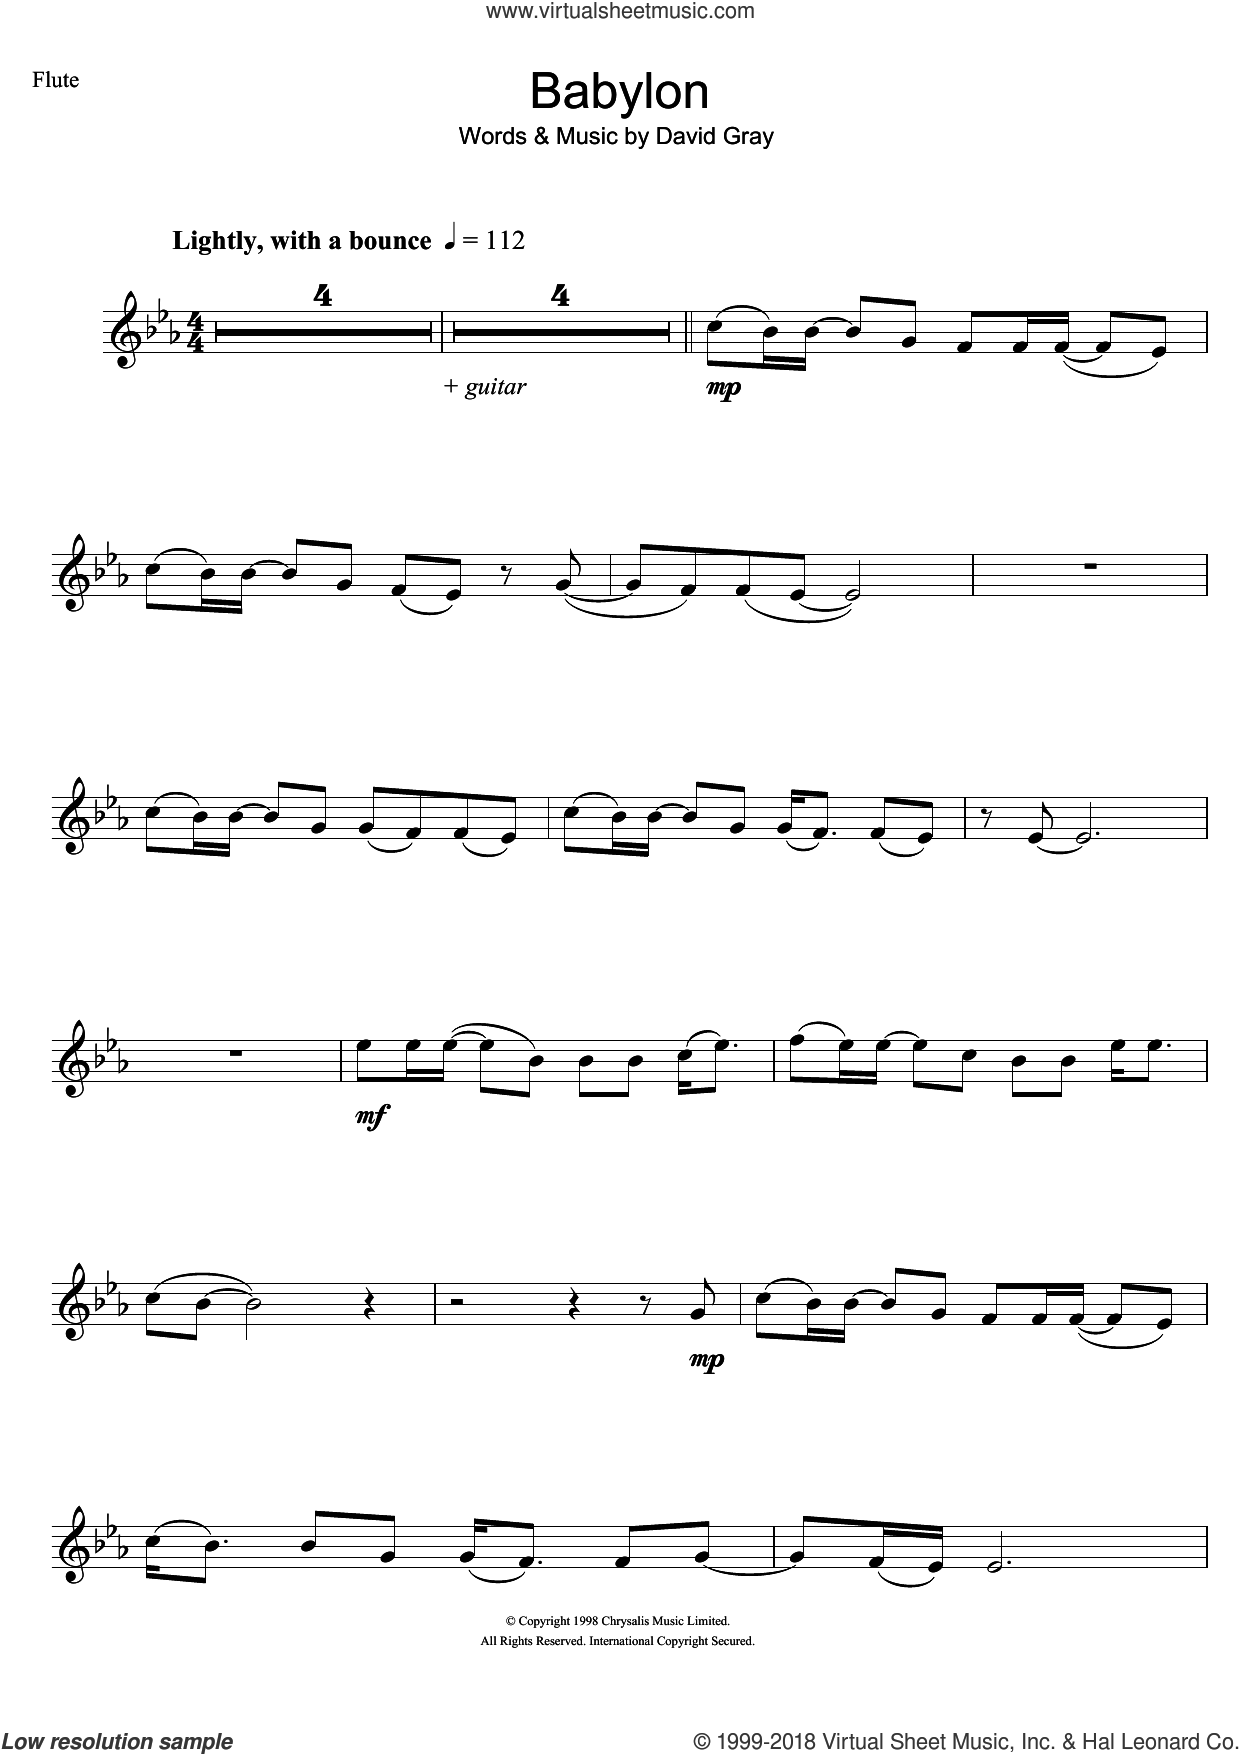 Babylon sheet music for flute solo by David Gray. Score Image Preview.